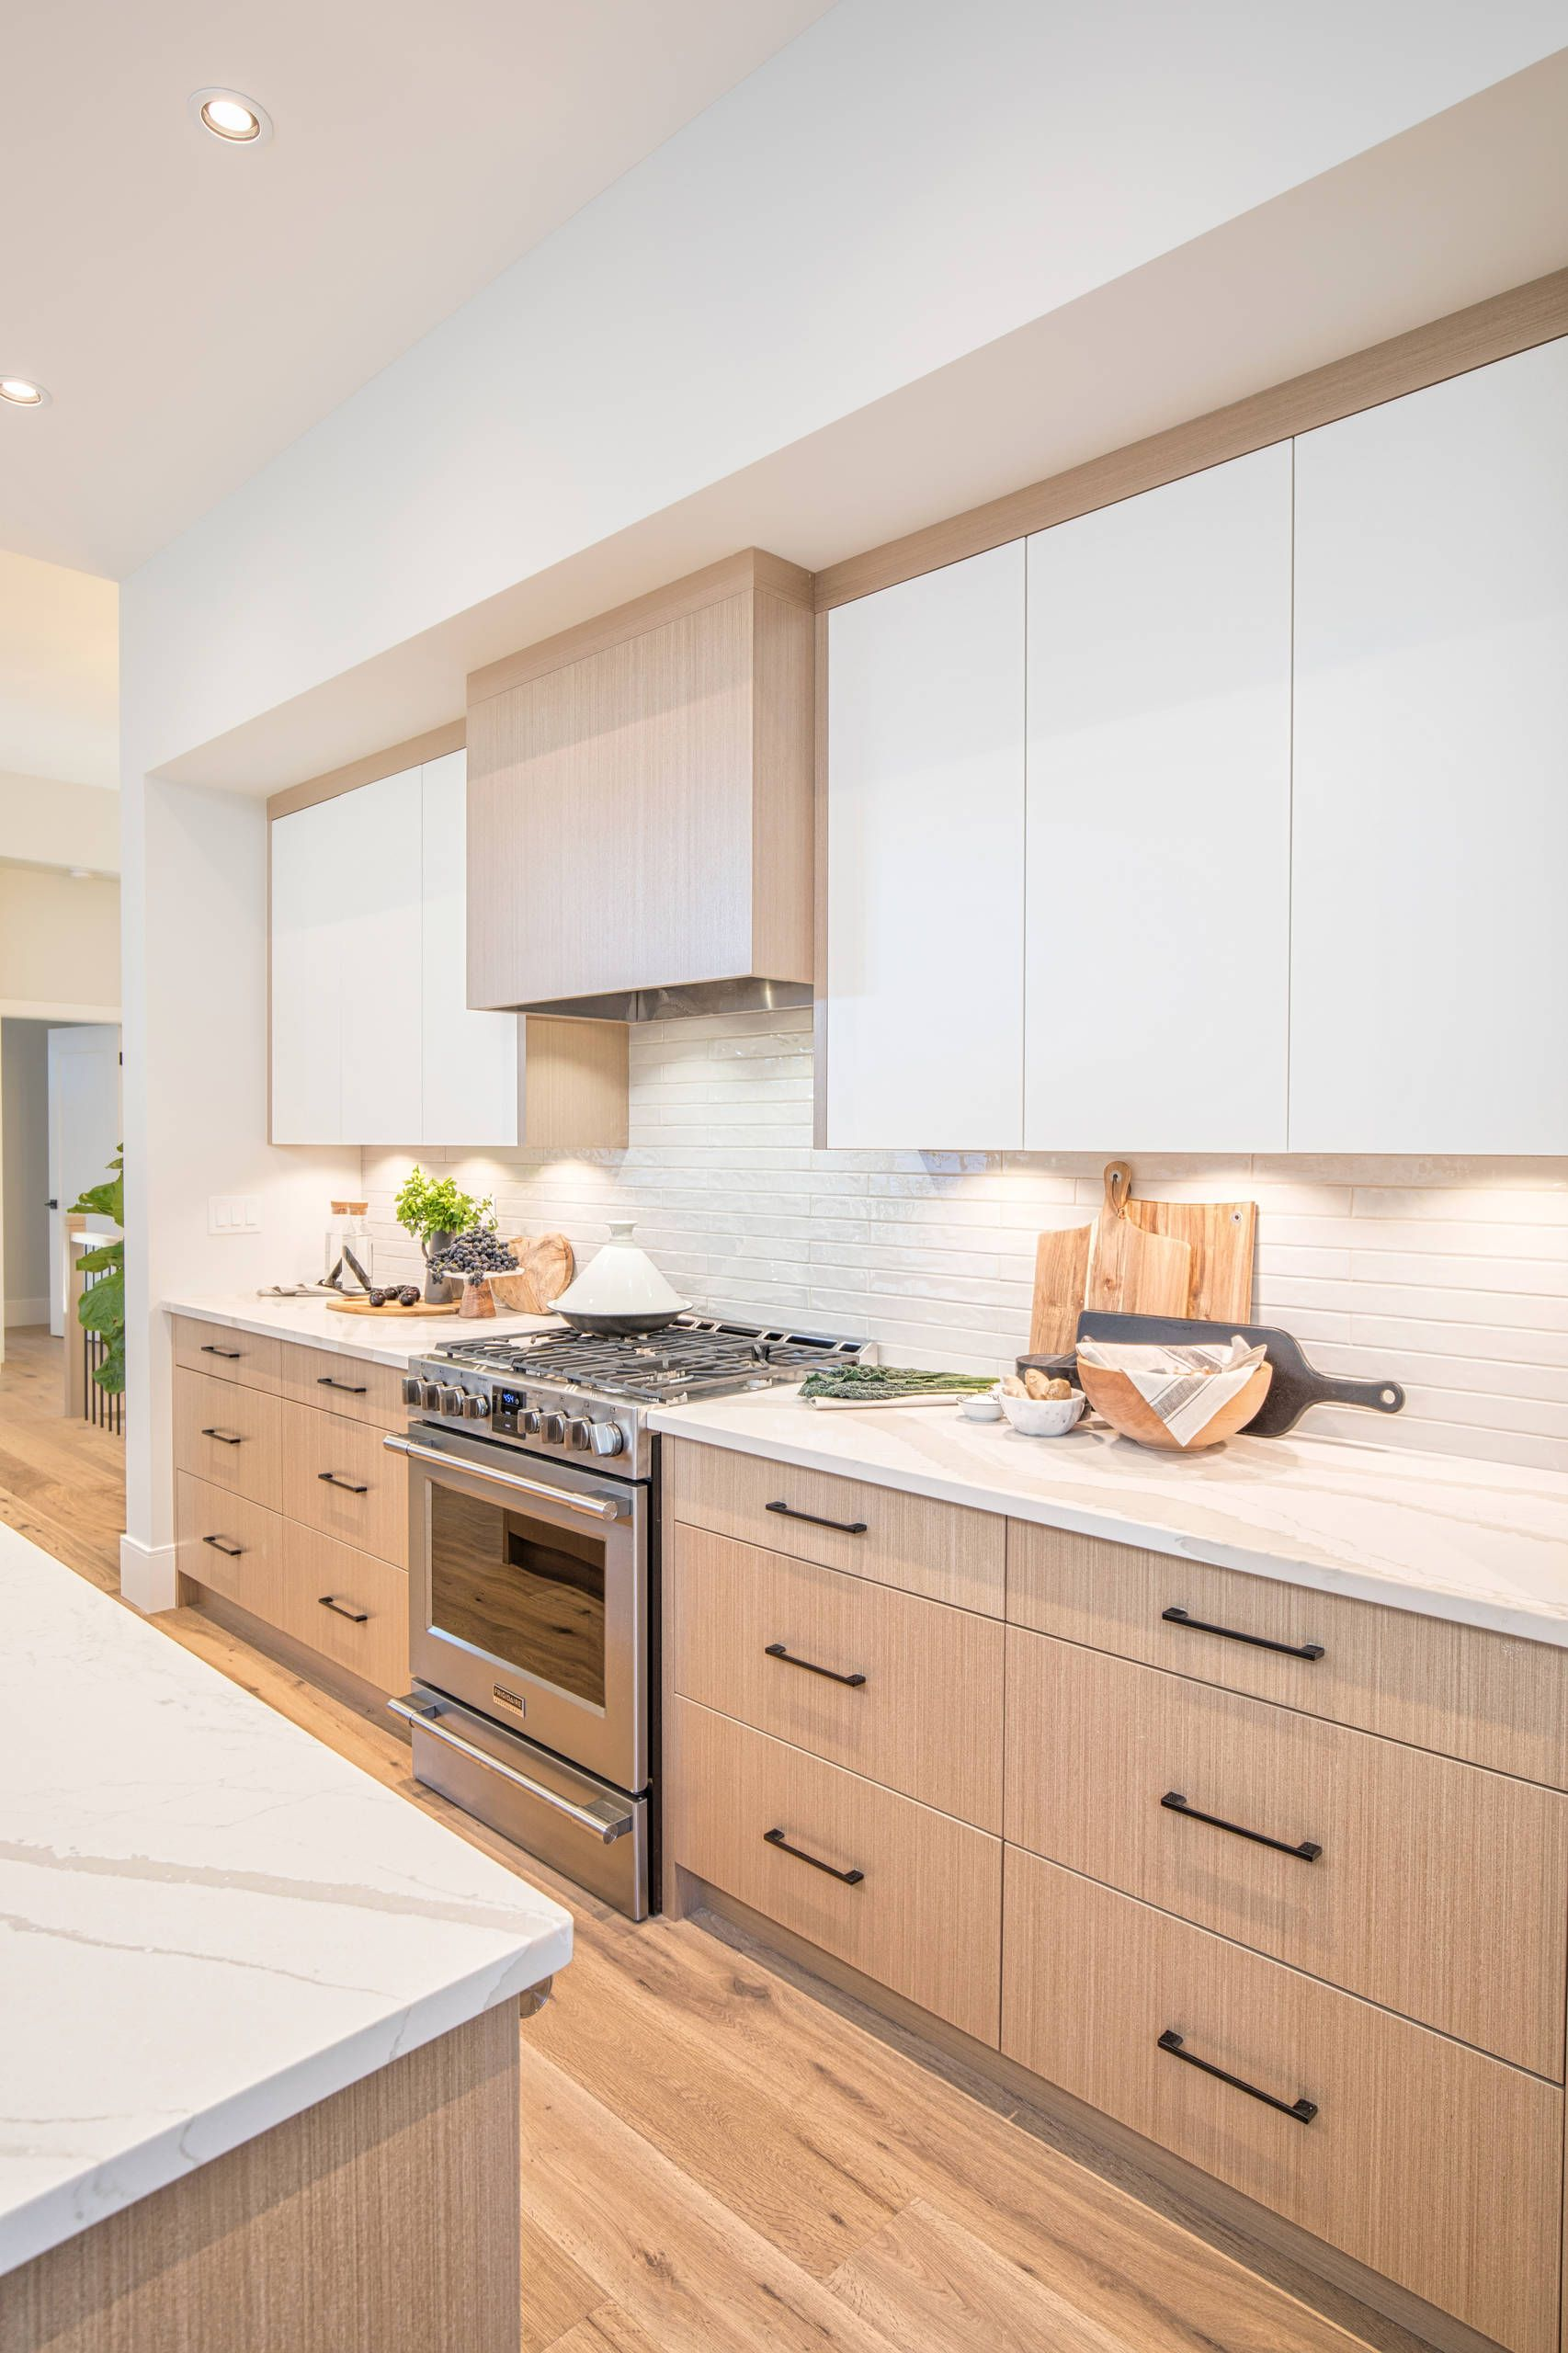 Houzz Rg Design Vancouver Home White Oak Kitchen Flat Panel Cabinets Modern Kitchen Cabinets